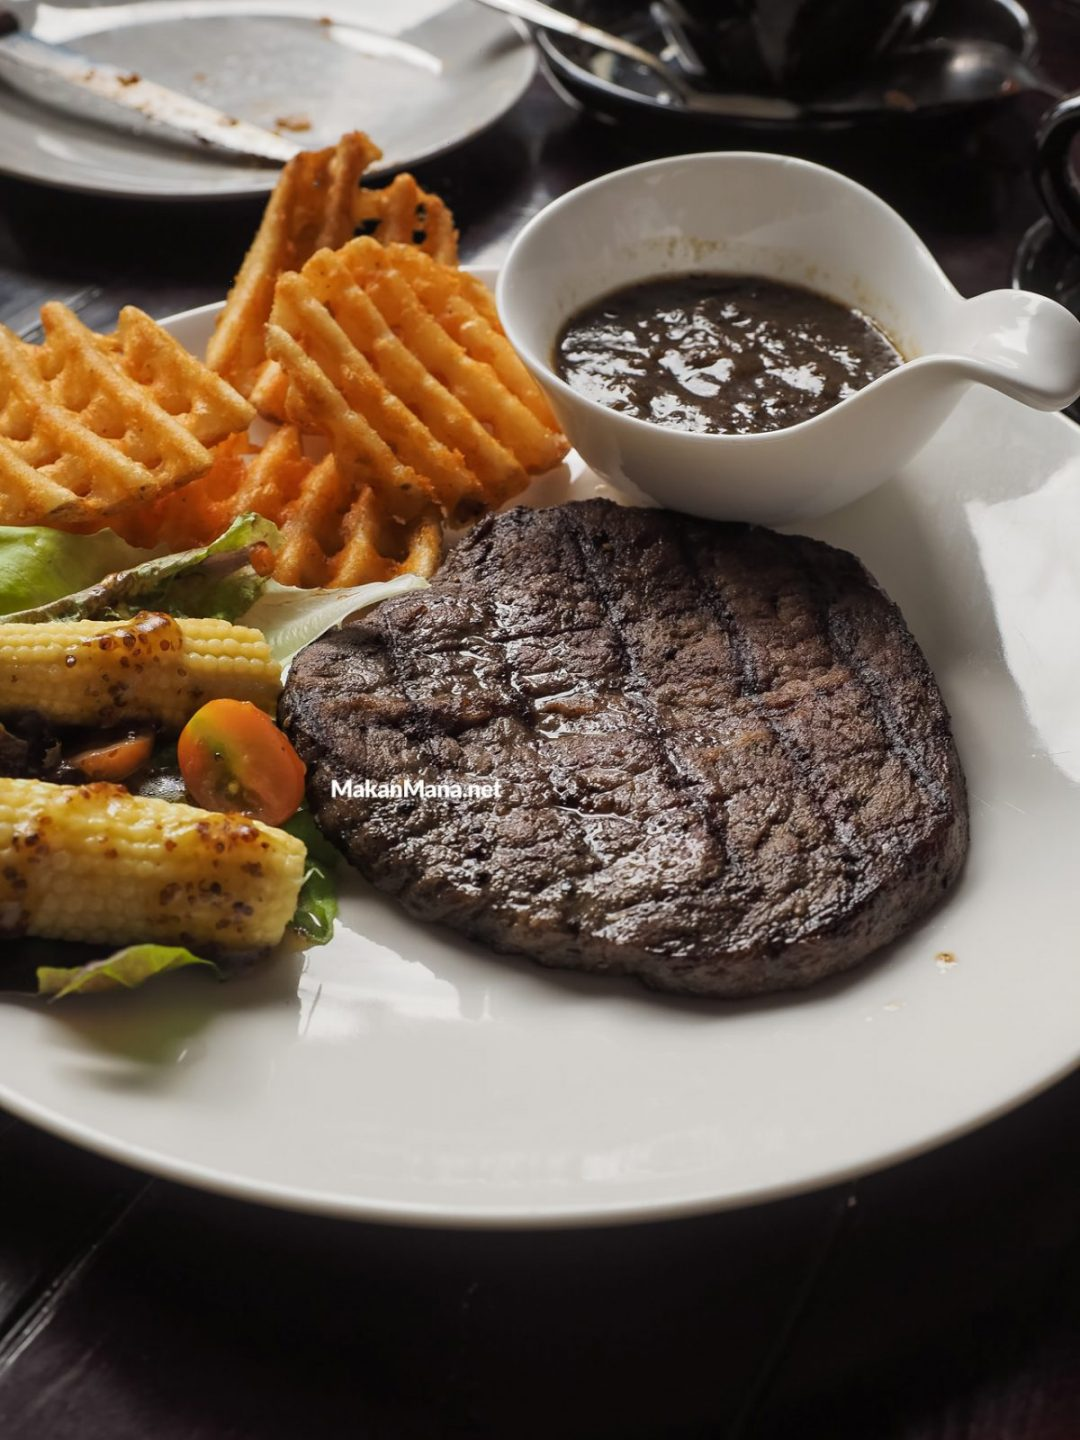 The Blue Cow Steak